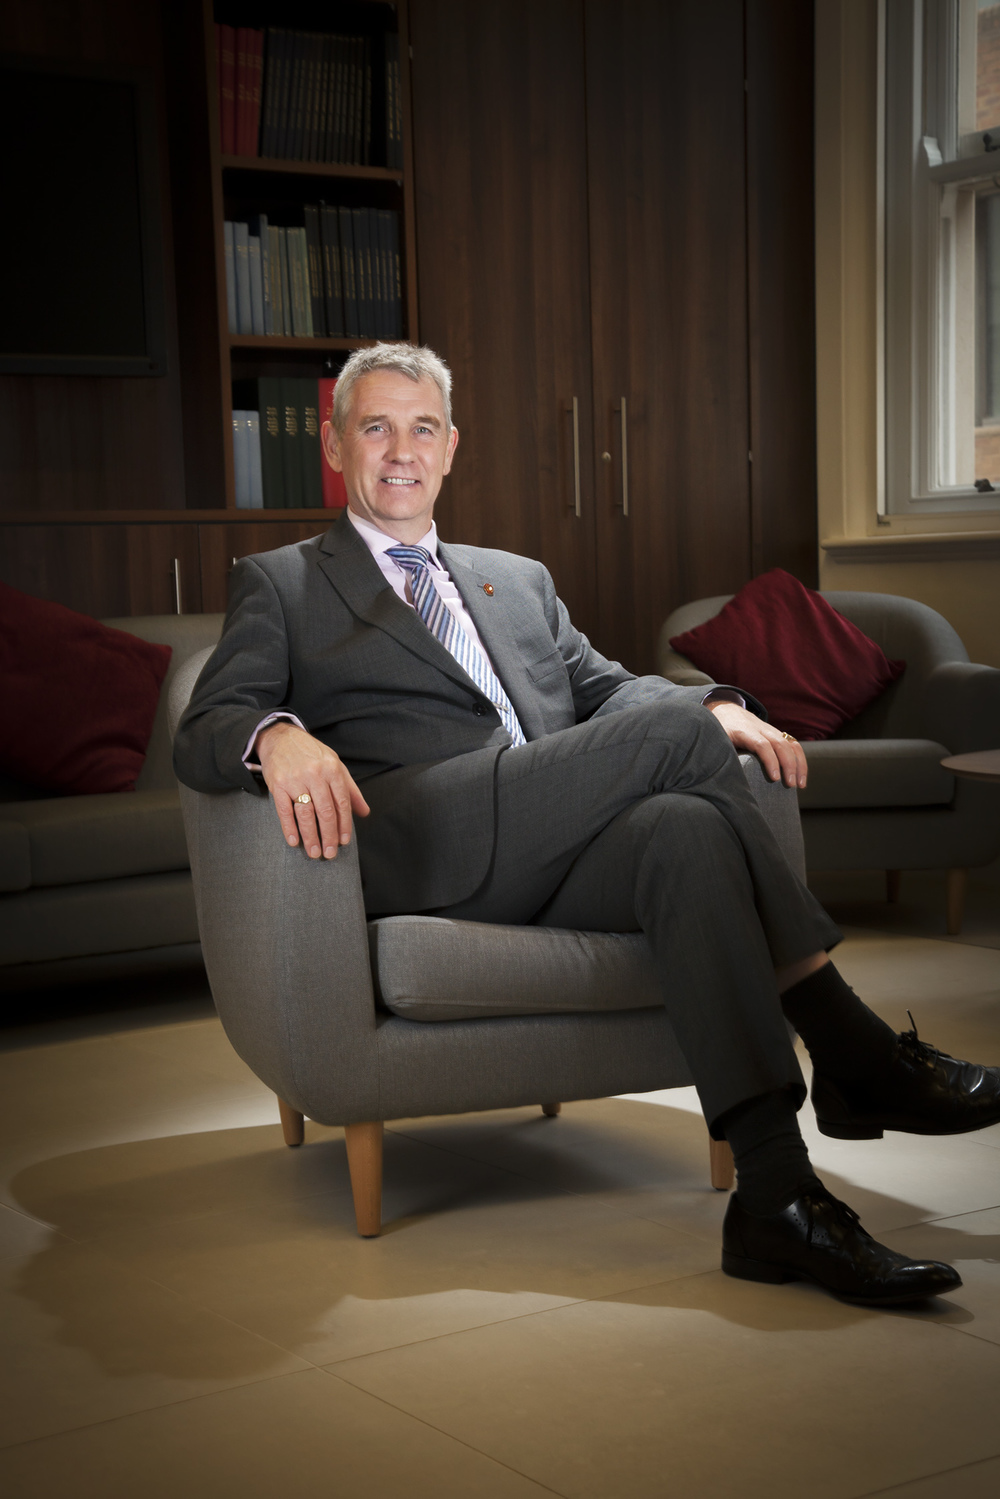 Full length portrait of man in suit sitting on a chair